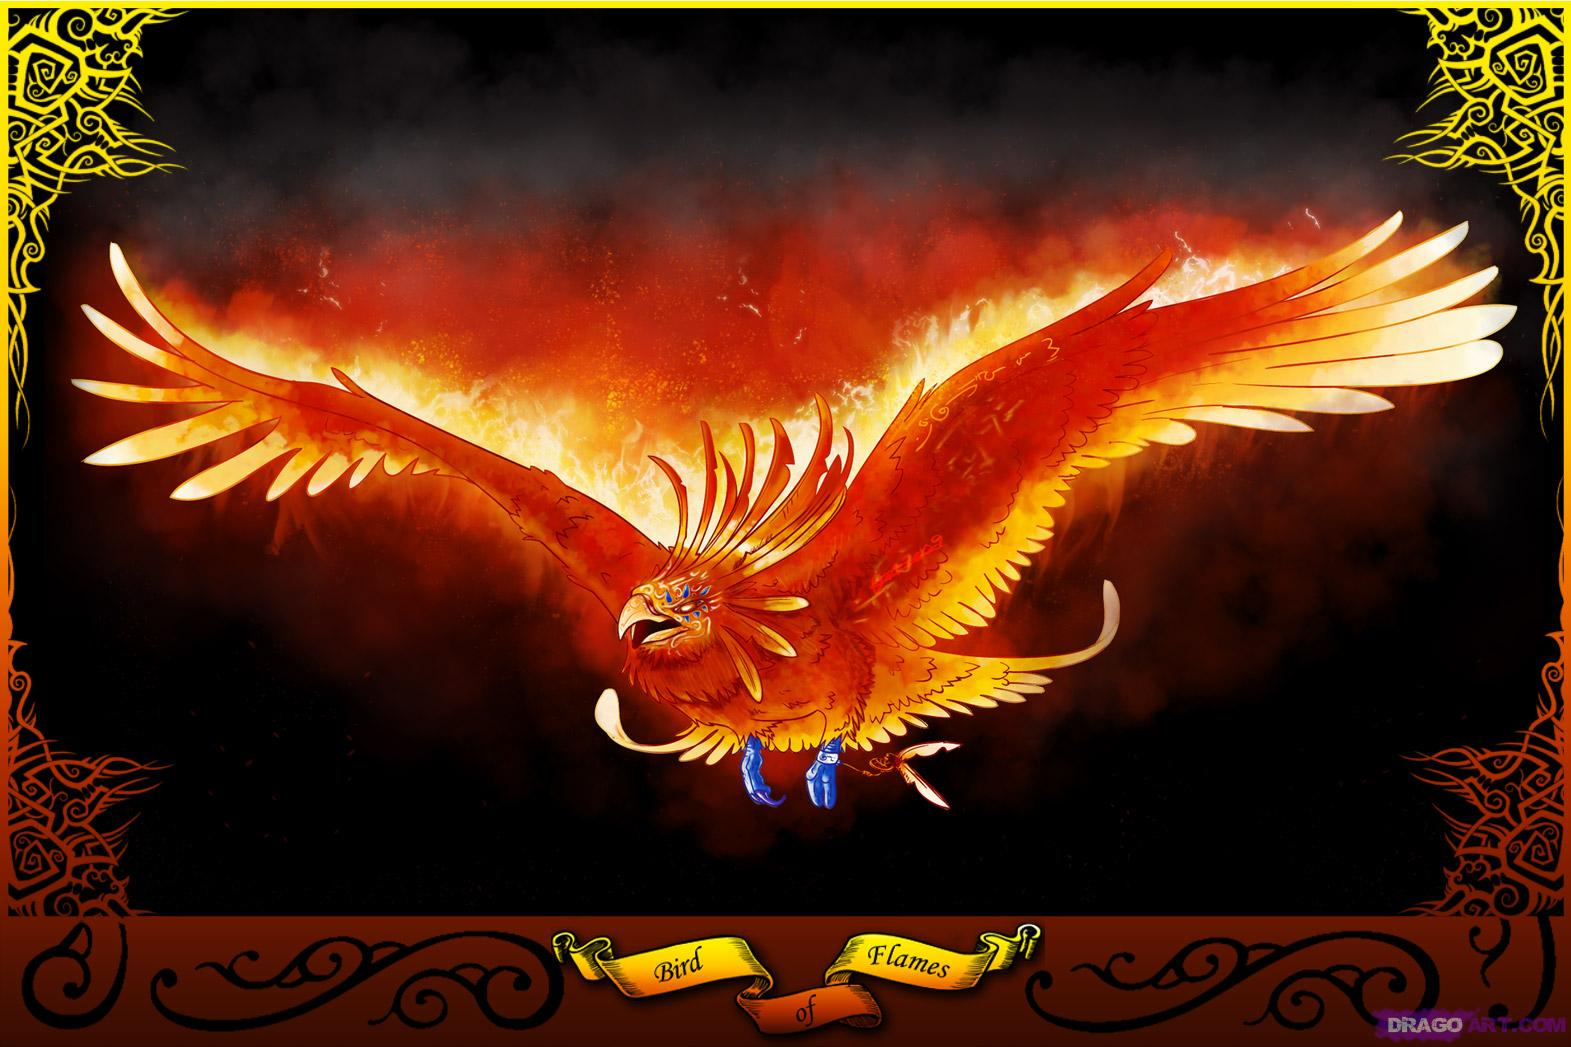 image how to draw a phoenix bird of flames jpg warriors of myth